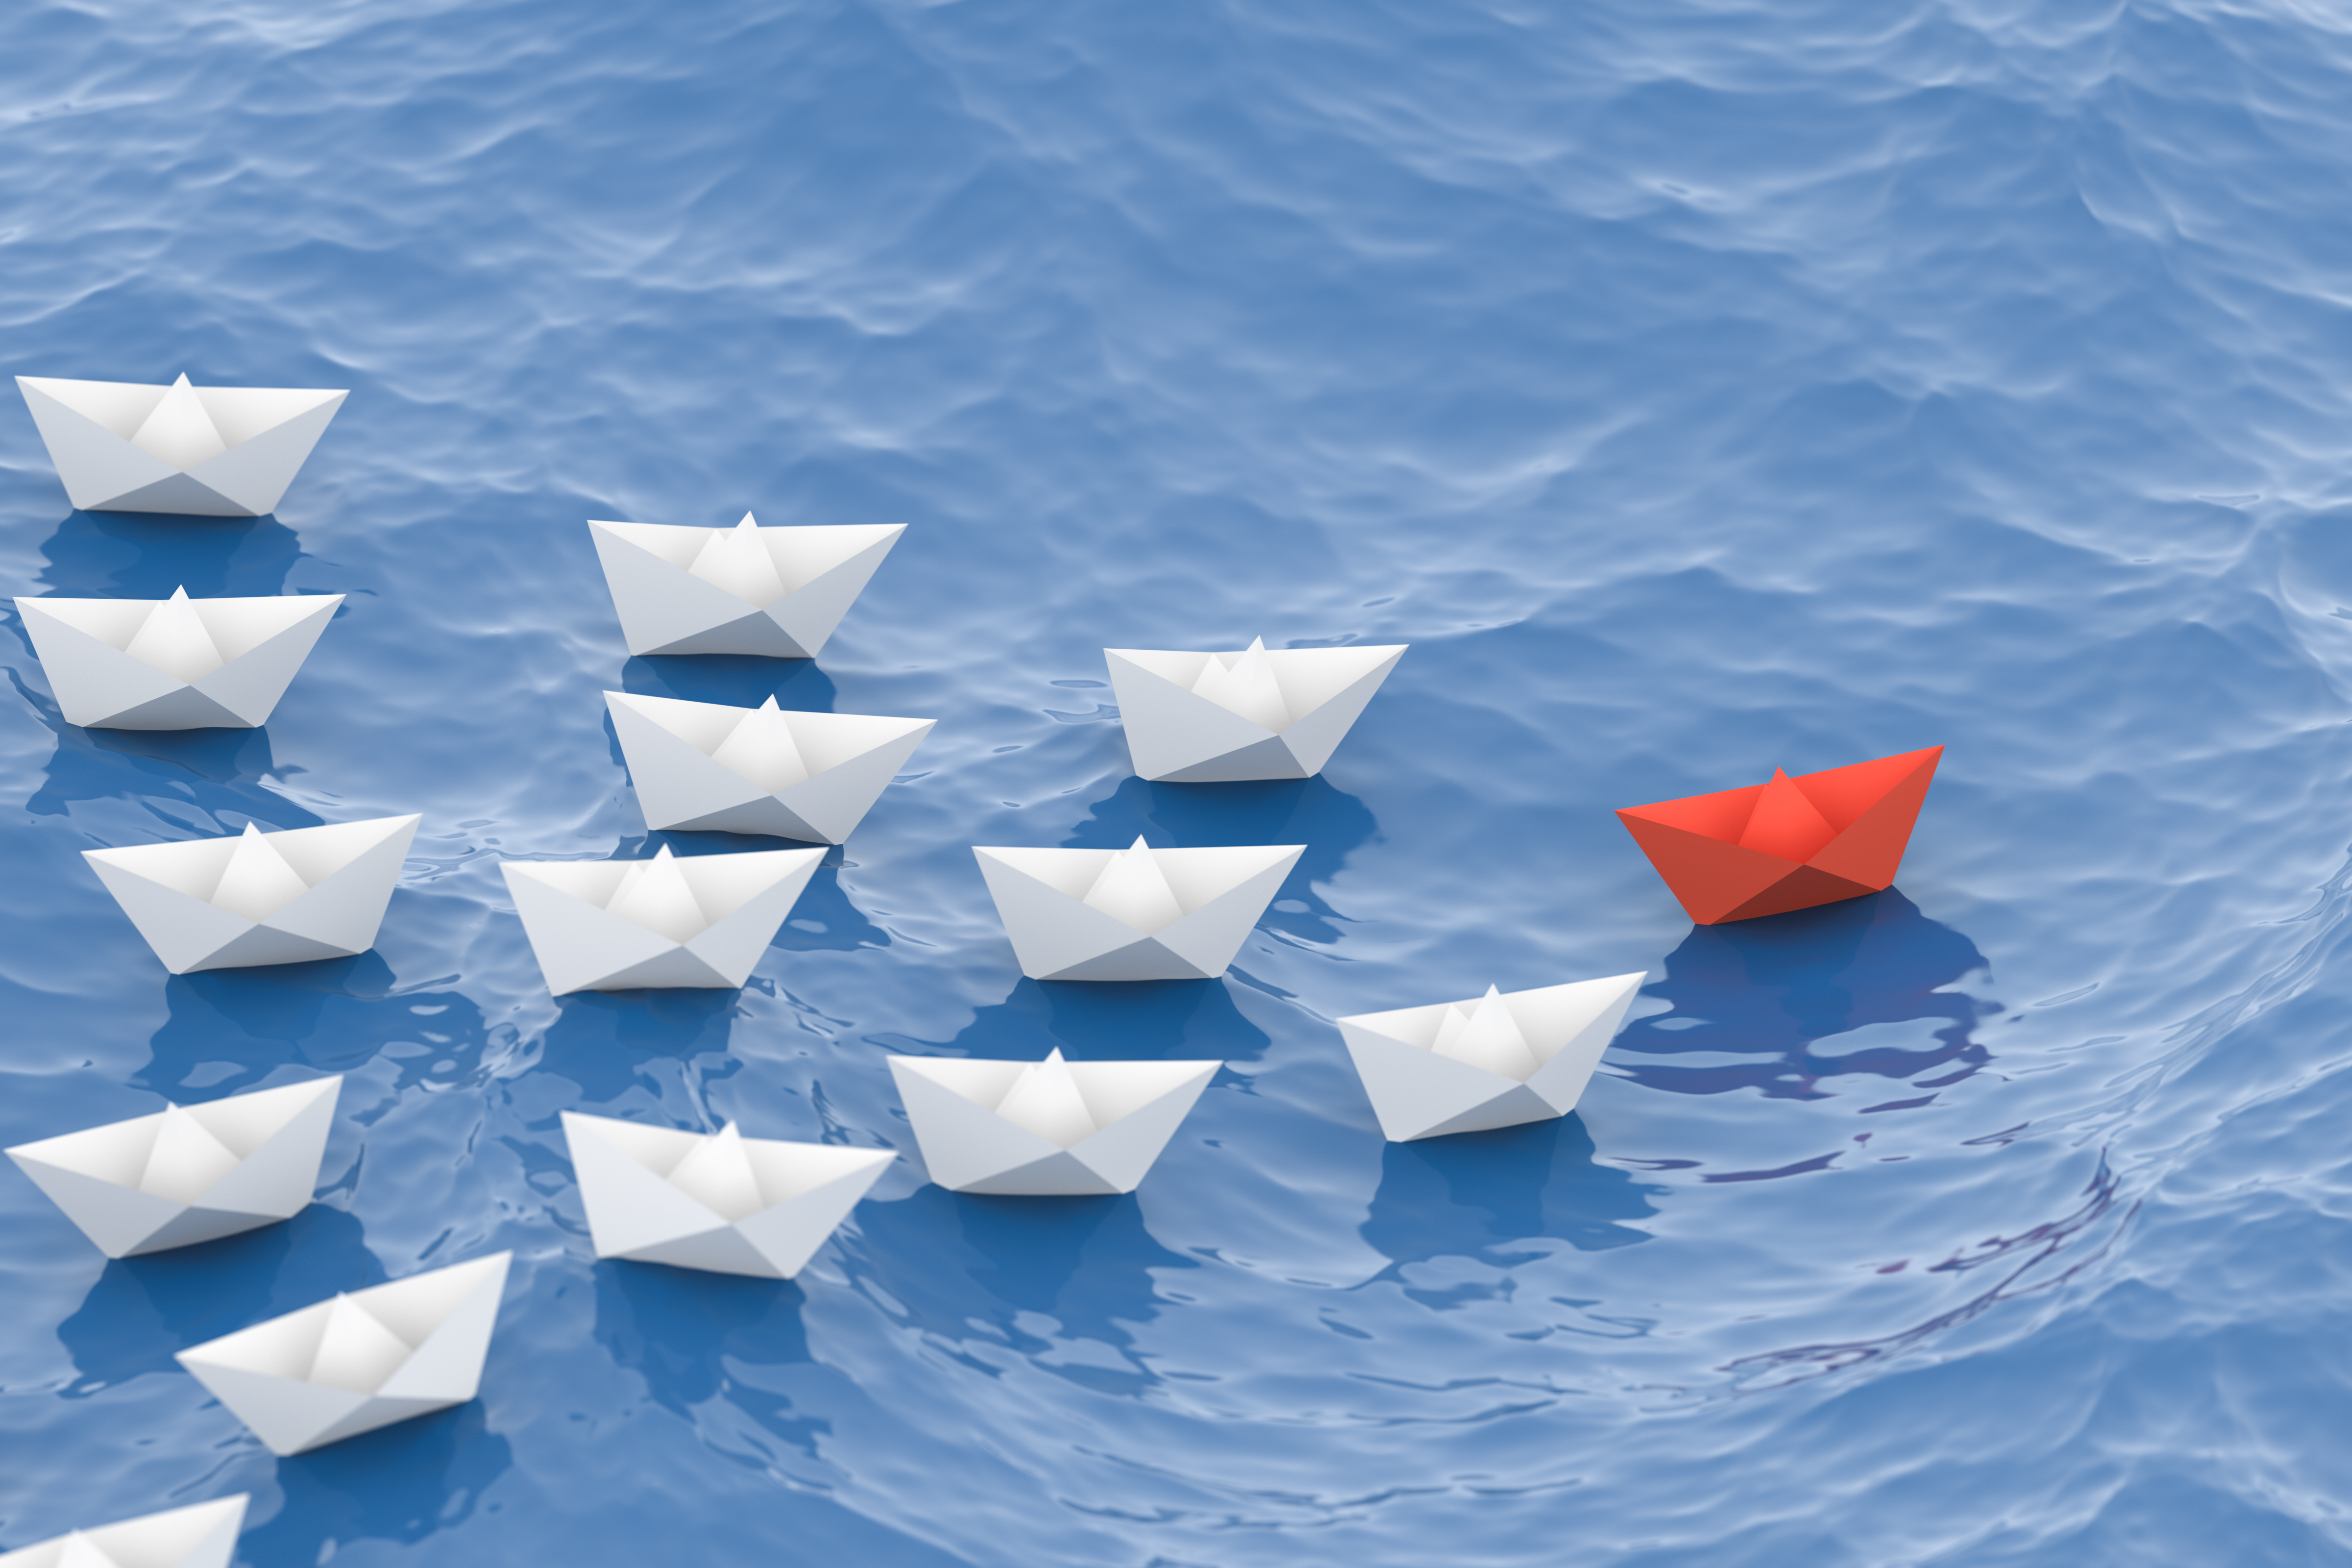 Paper boats - red one leading -white ones following - leadership resolutions for global development professionals